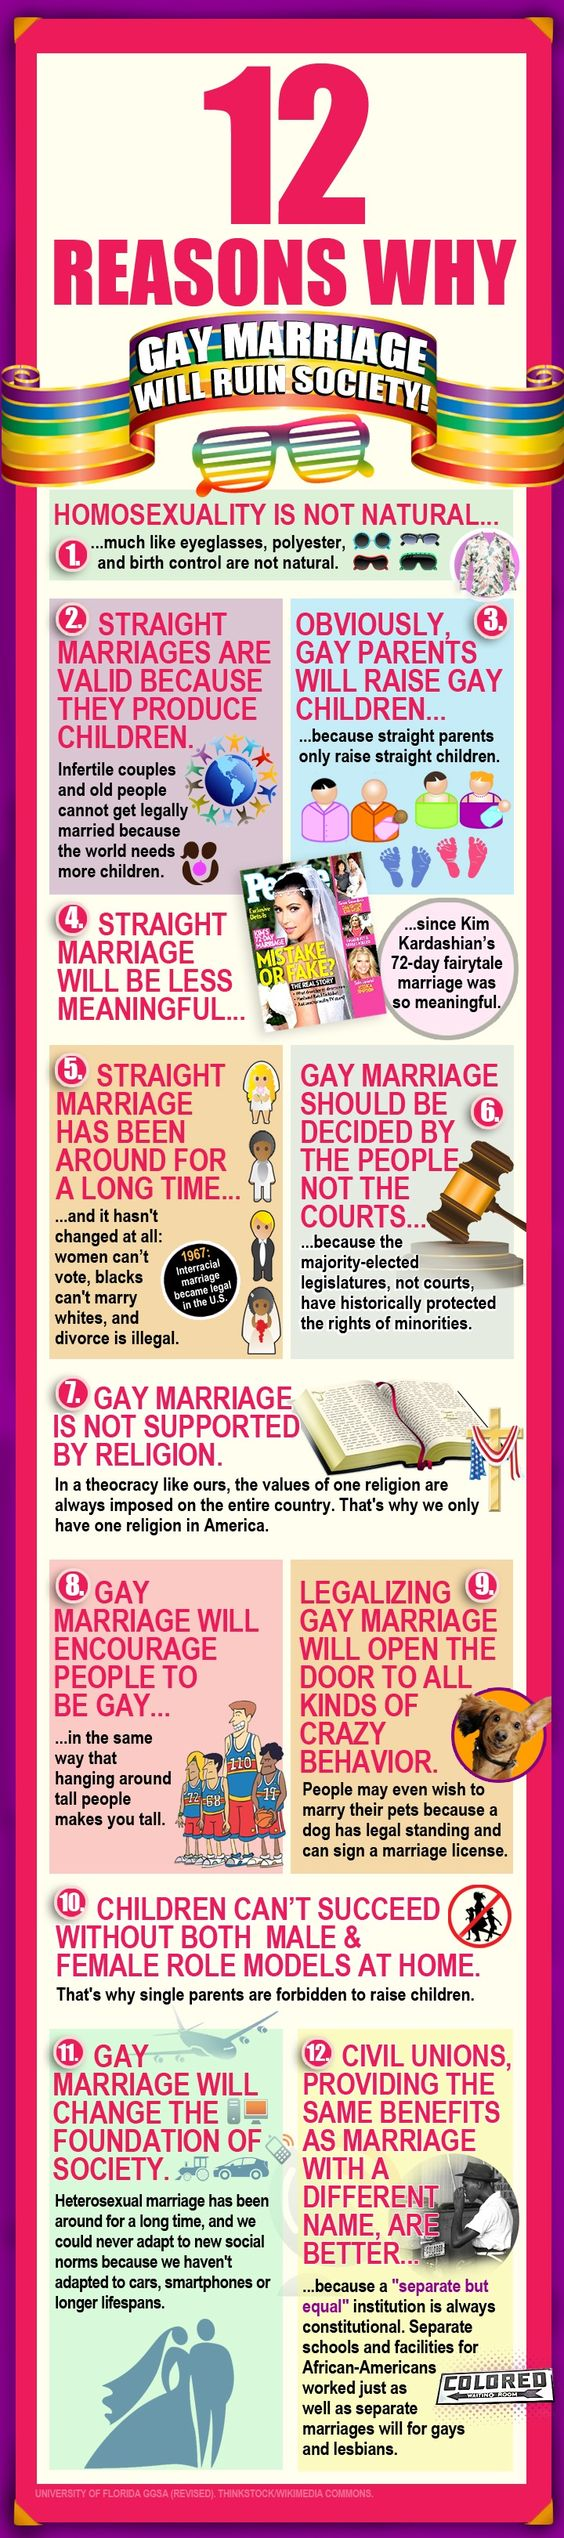 12 Reasons Gay Marriage Will Ruin Society